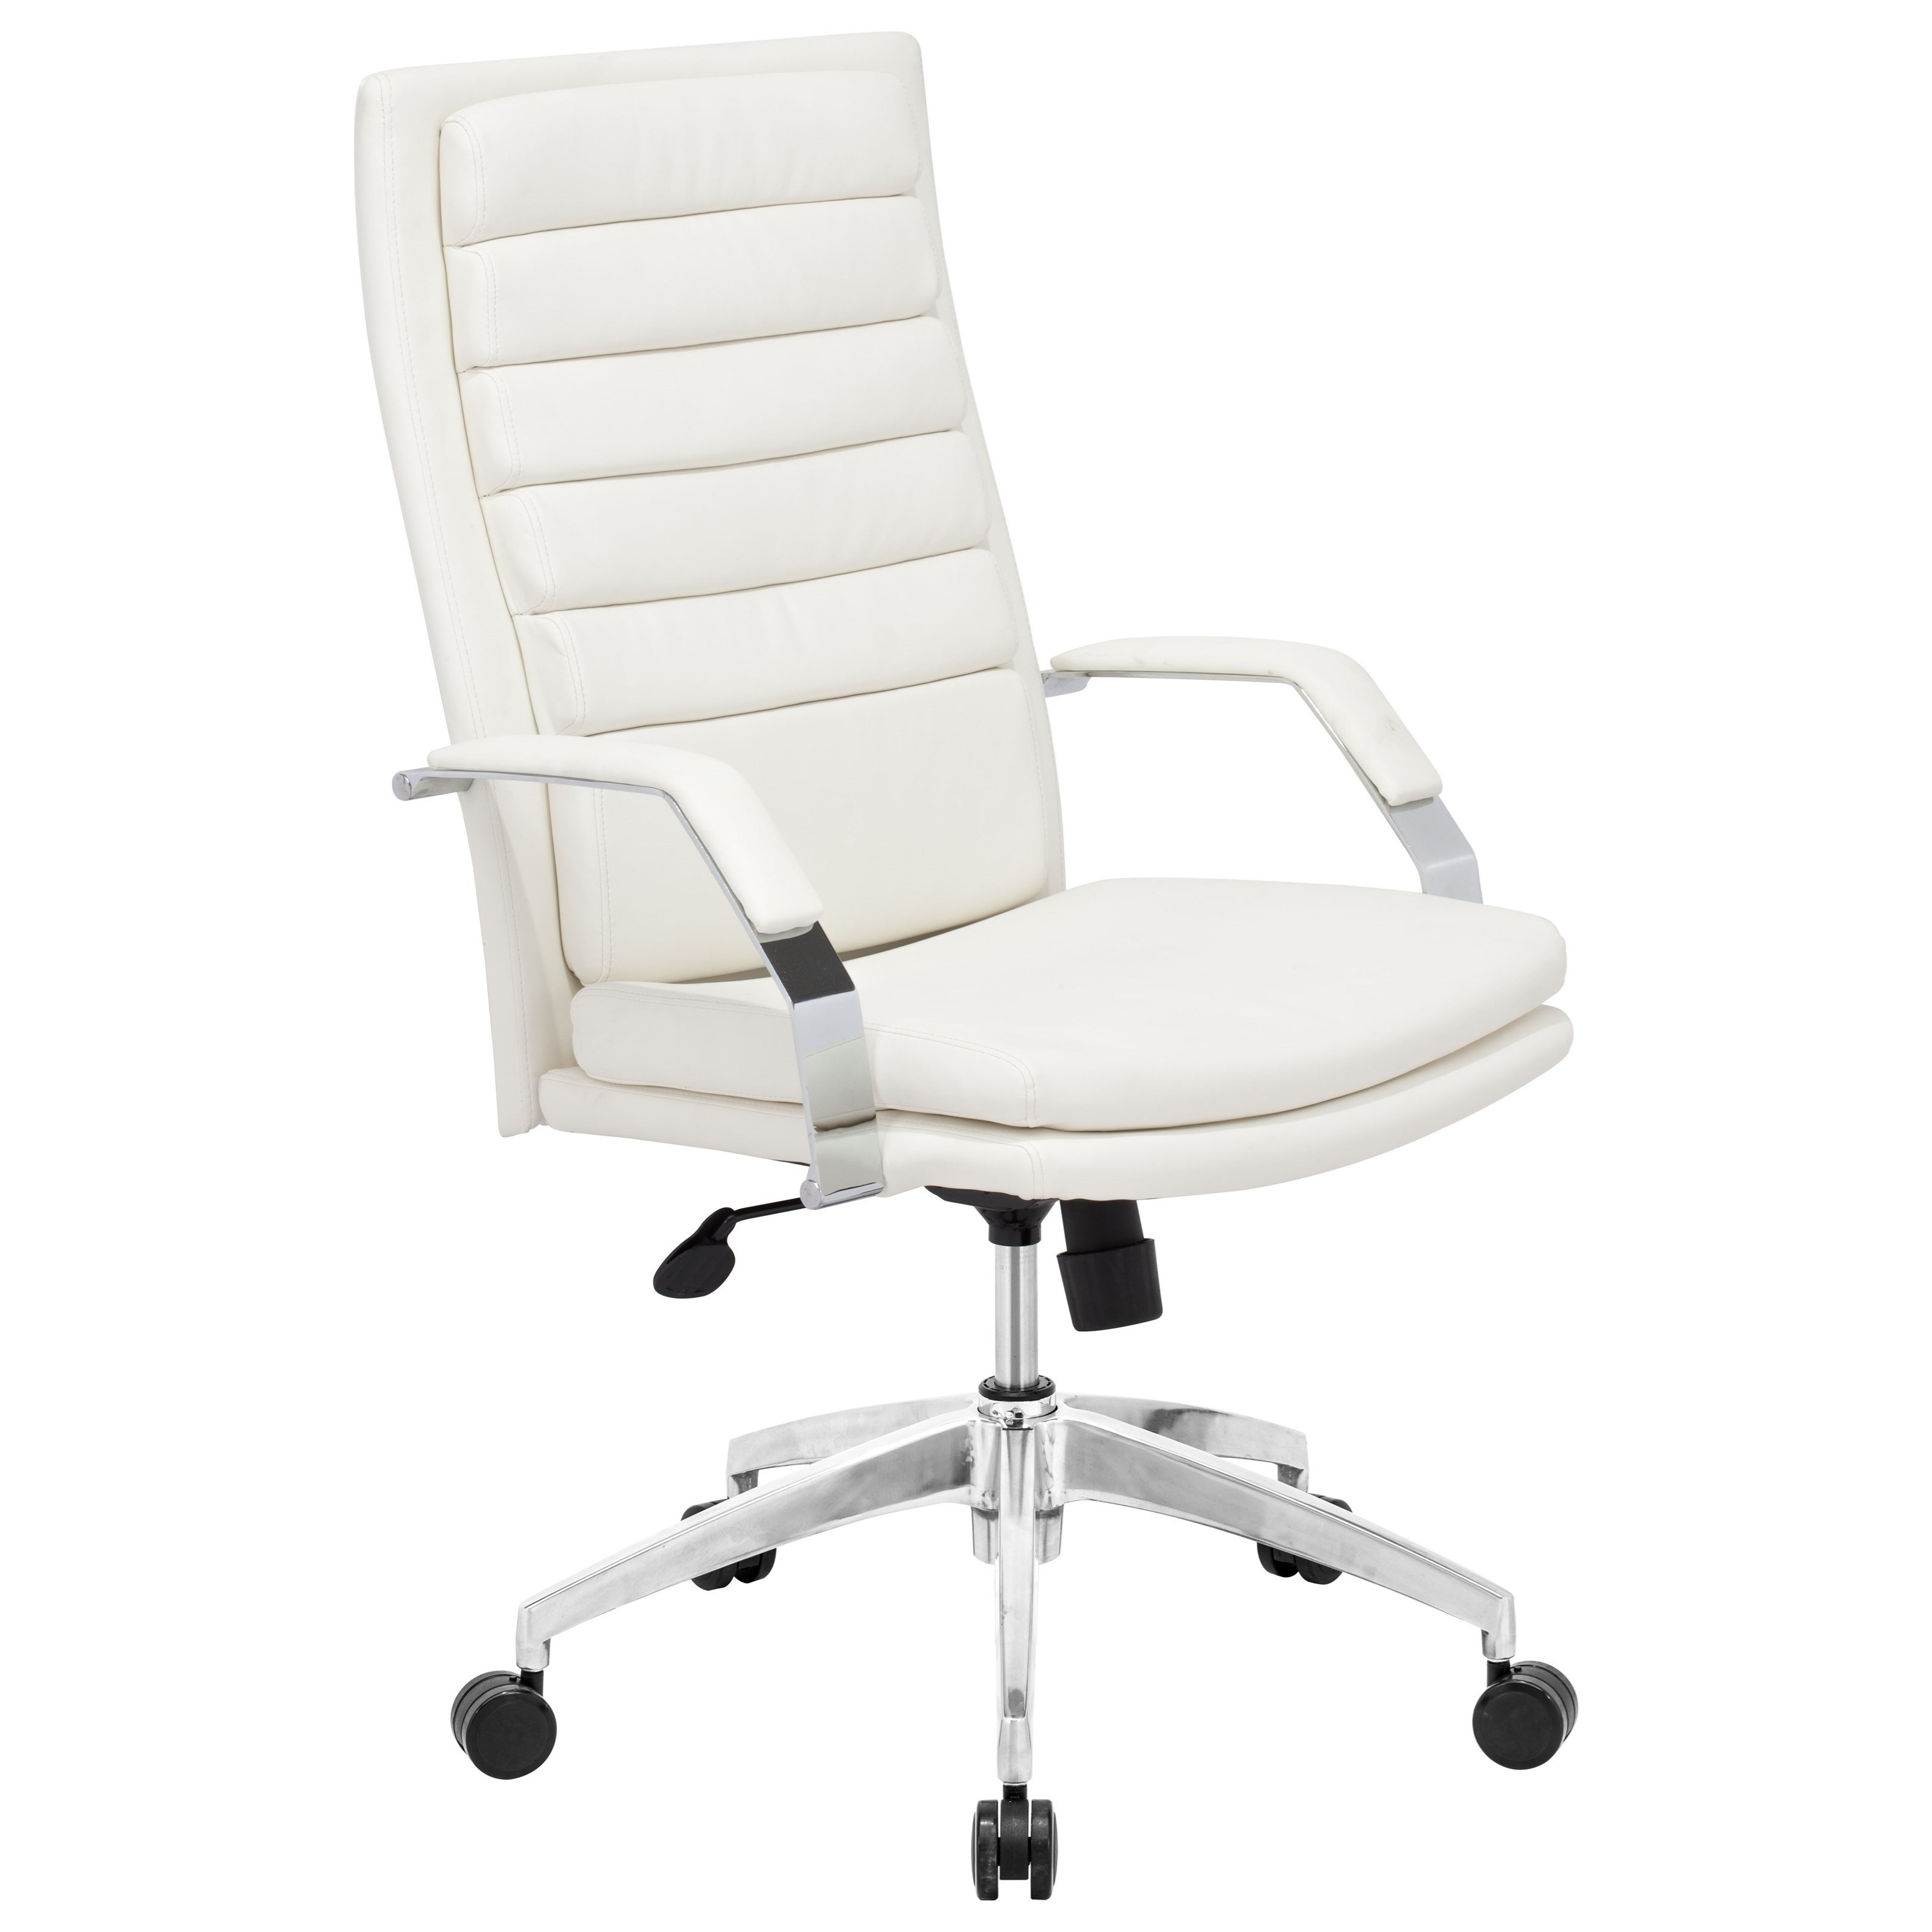 Director Comfort Office Chair by Zuo at Nassau Furniture and Mattress